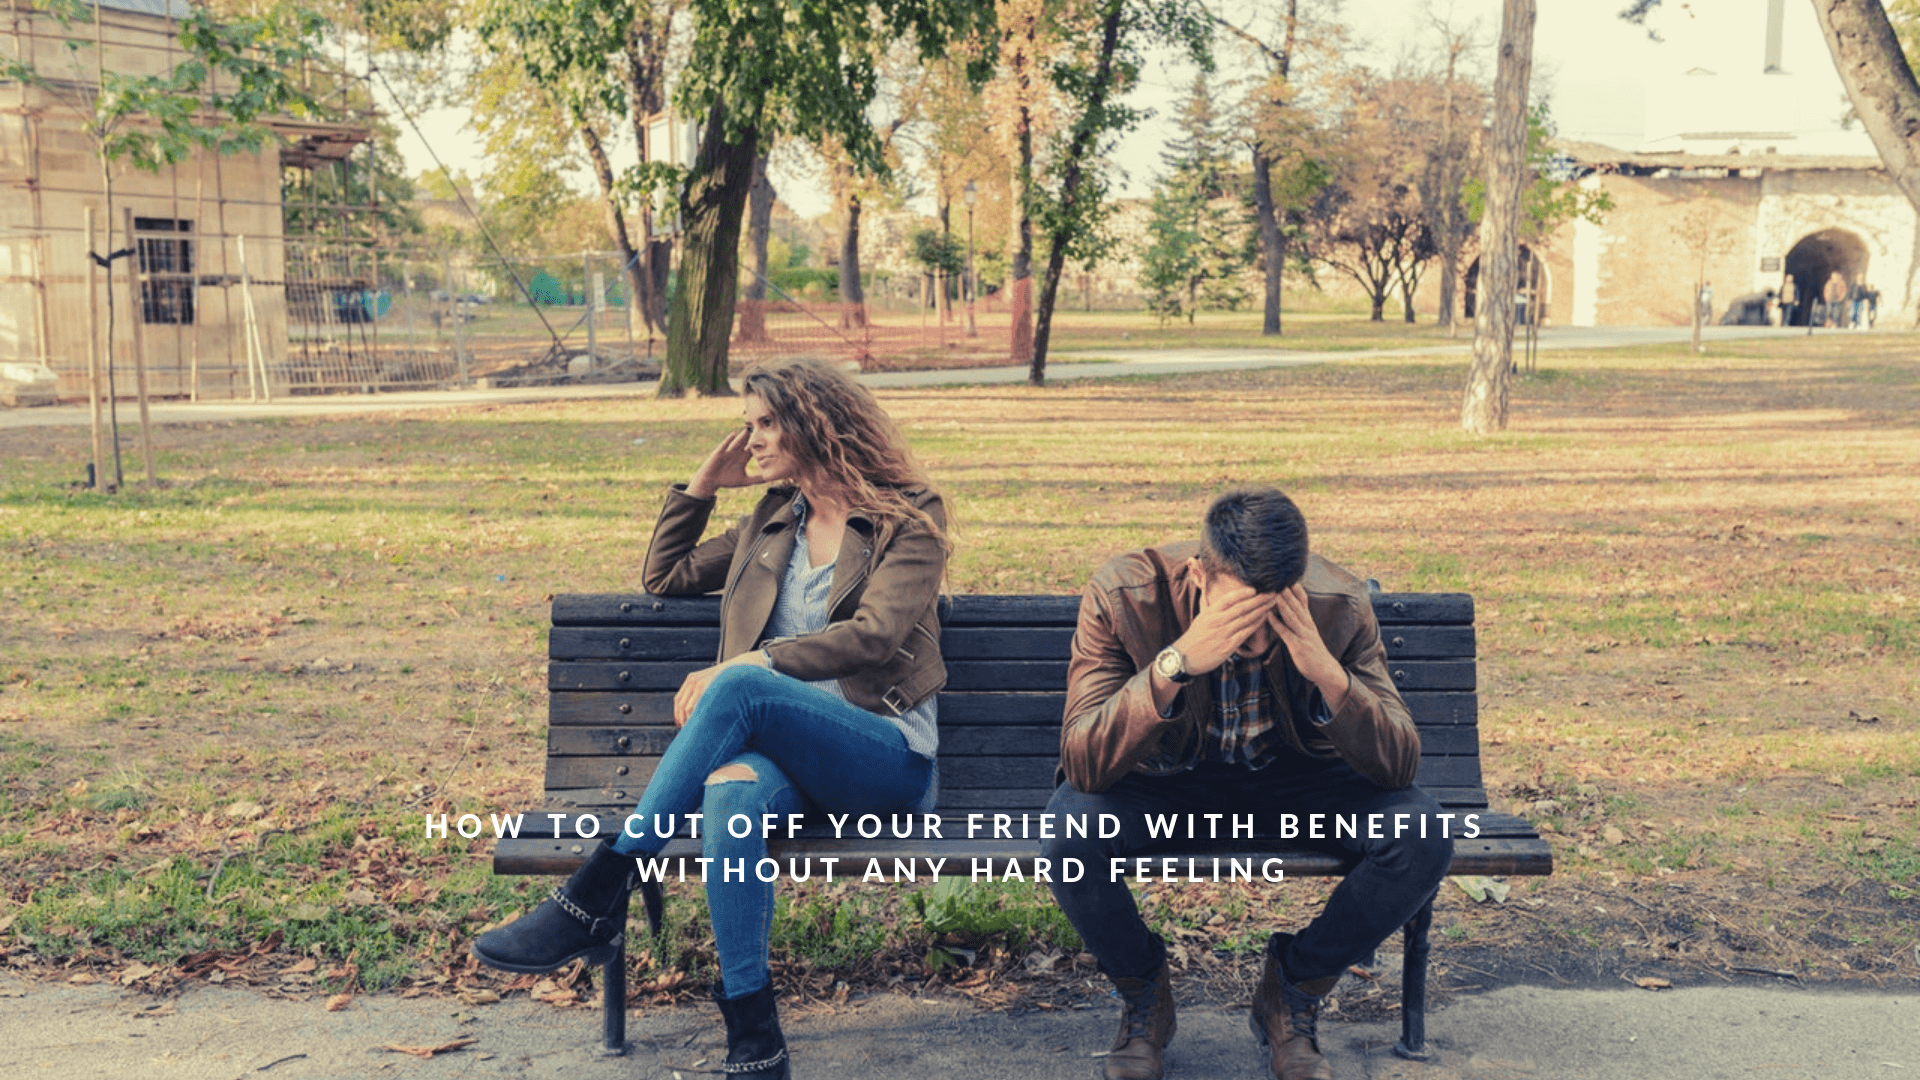 How To Cut Off Your Friend With Benefits (Without Any Hard